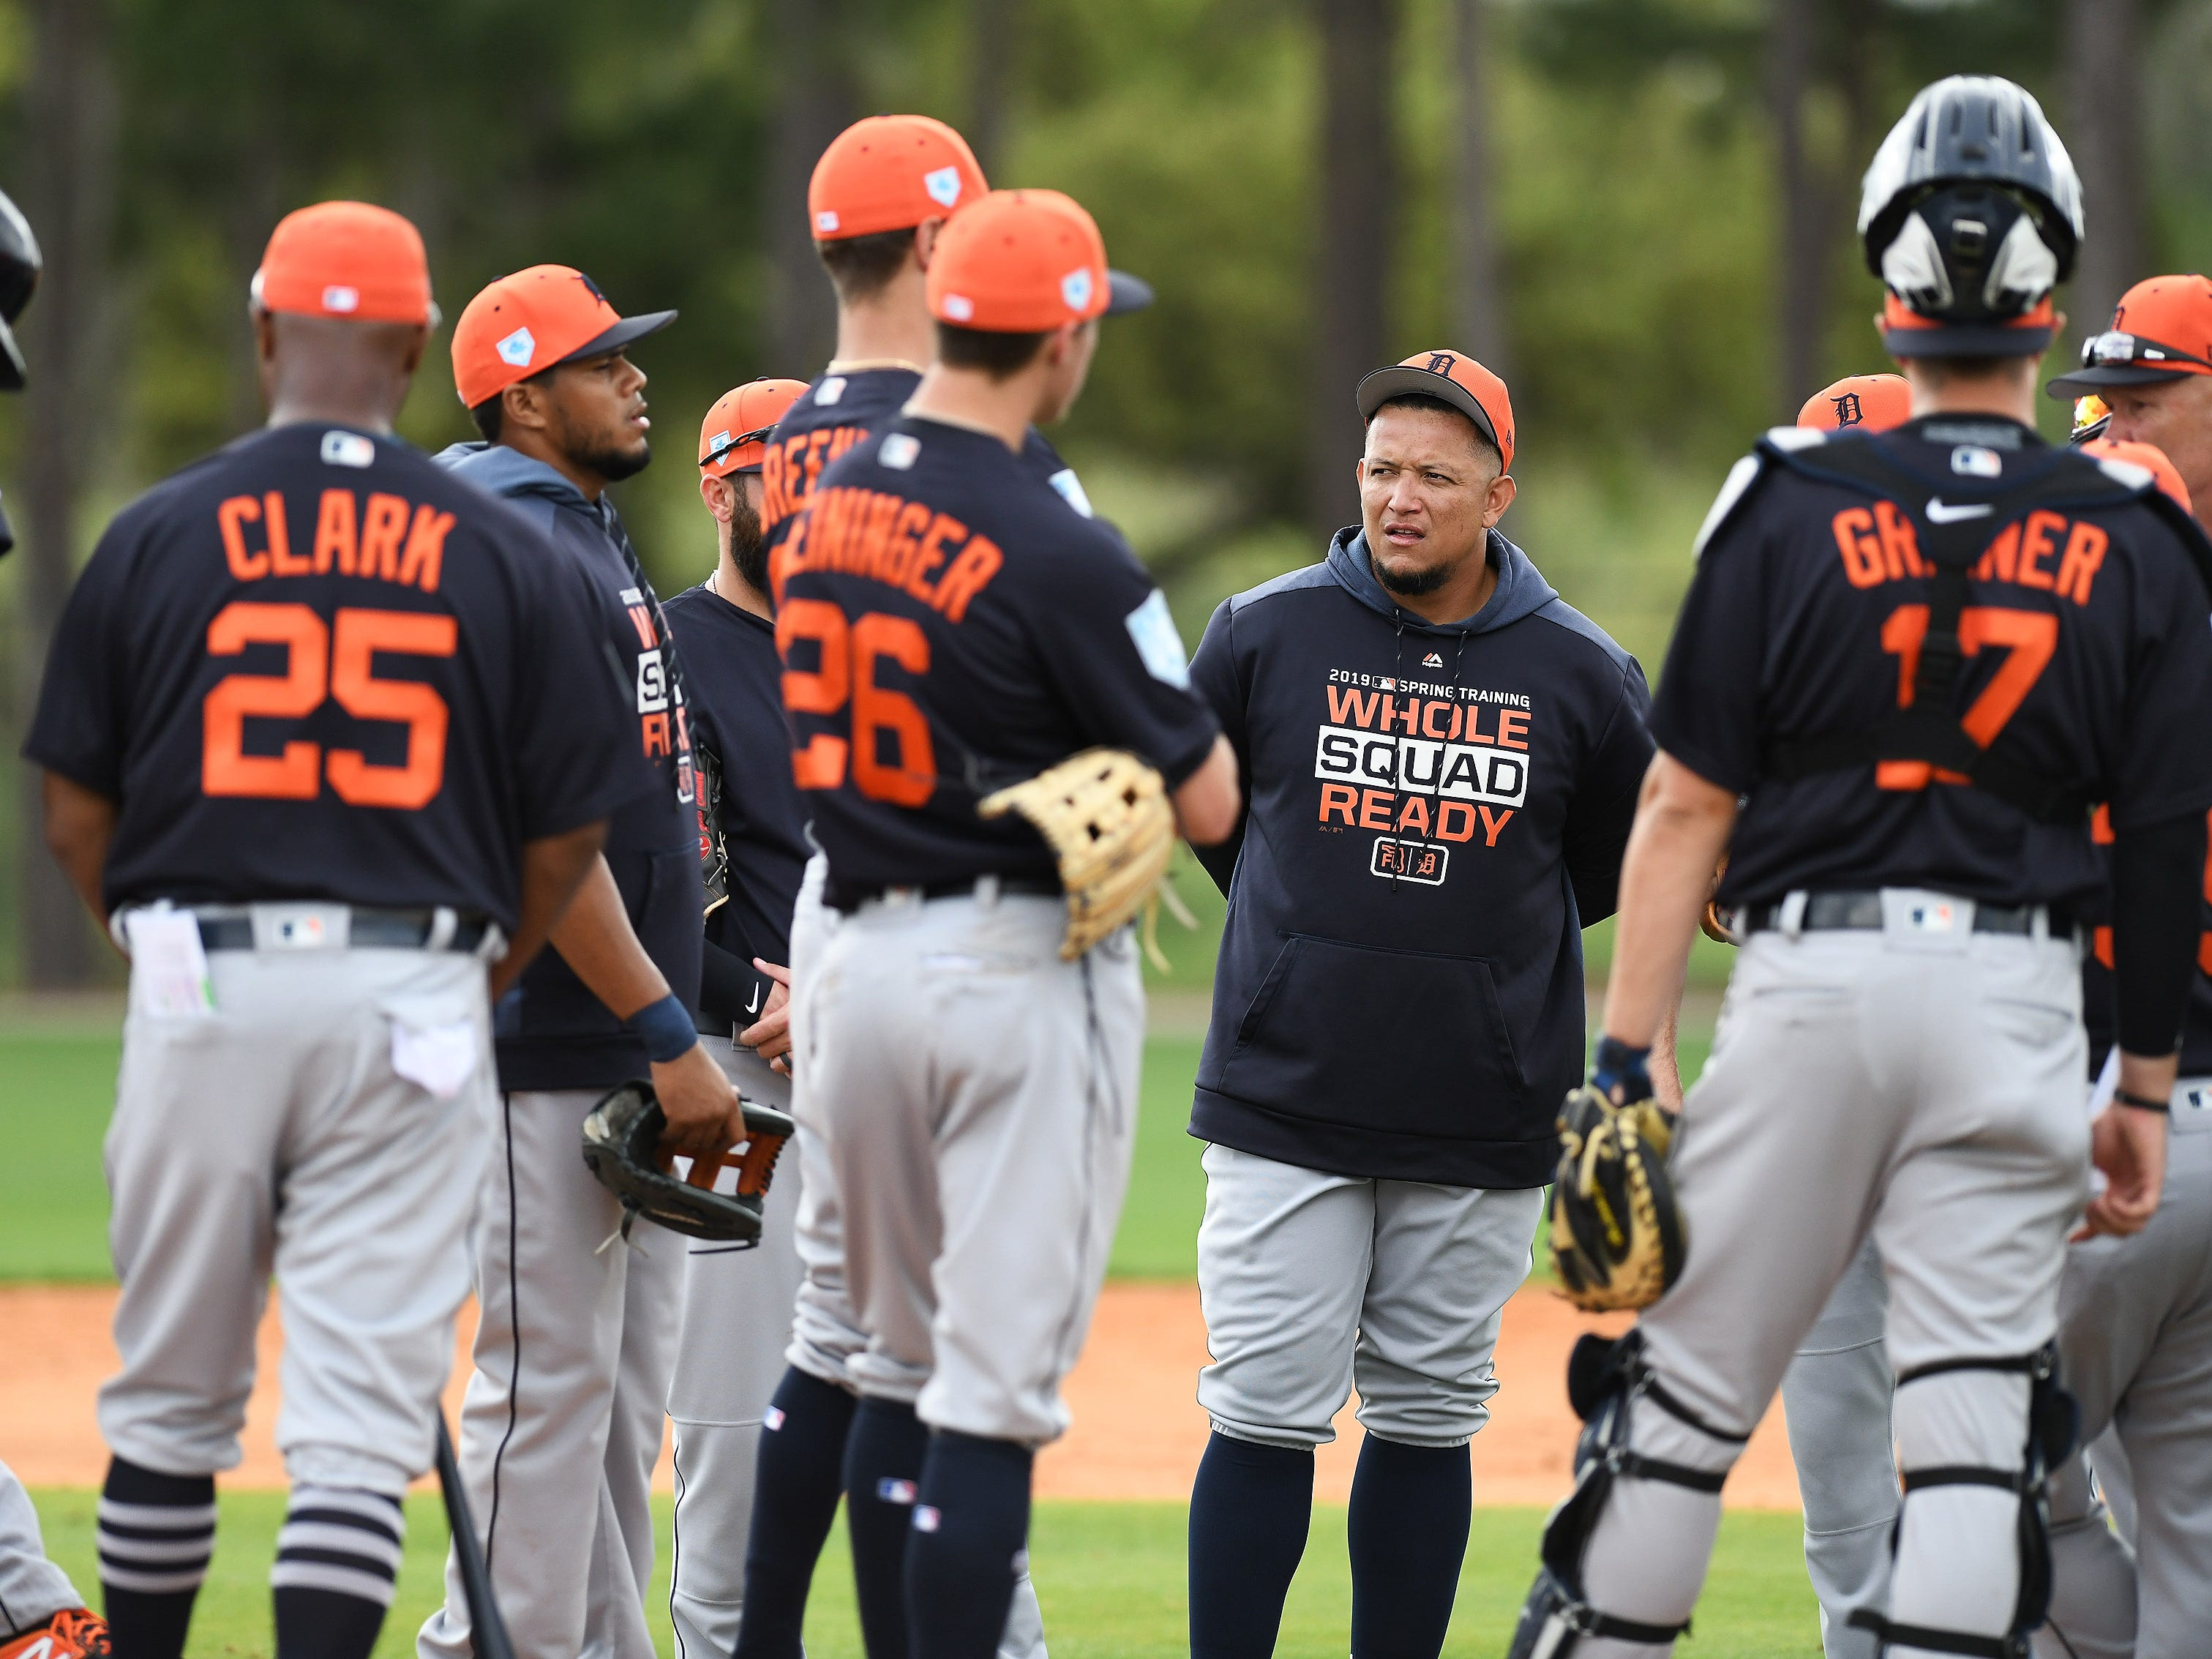 Miguel Cabrera, right facing, gathers  with teammates for instructions during pitchers infield practice.